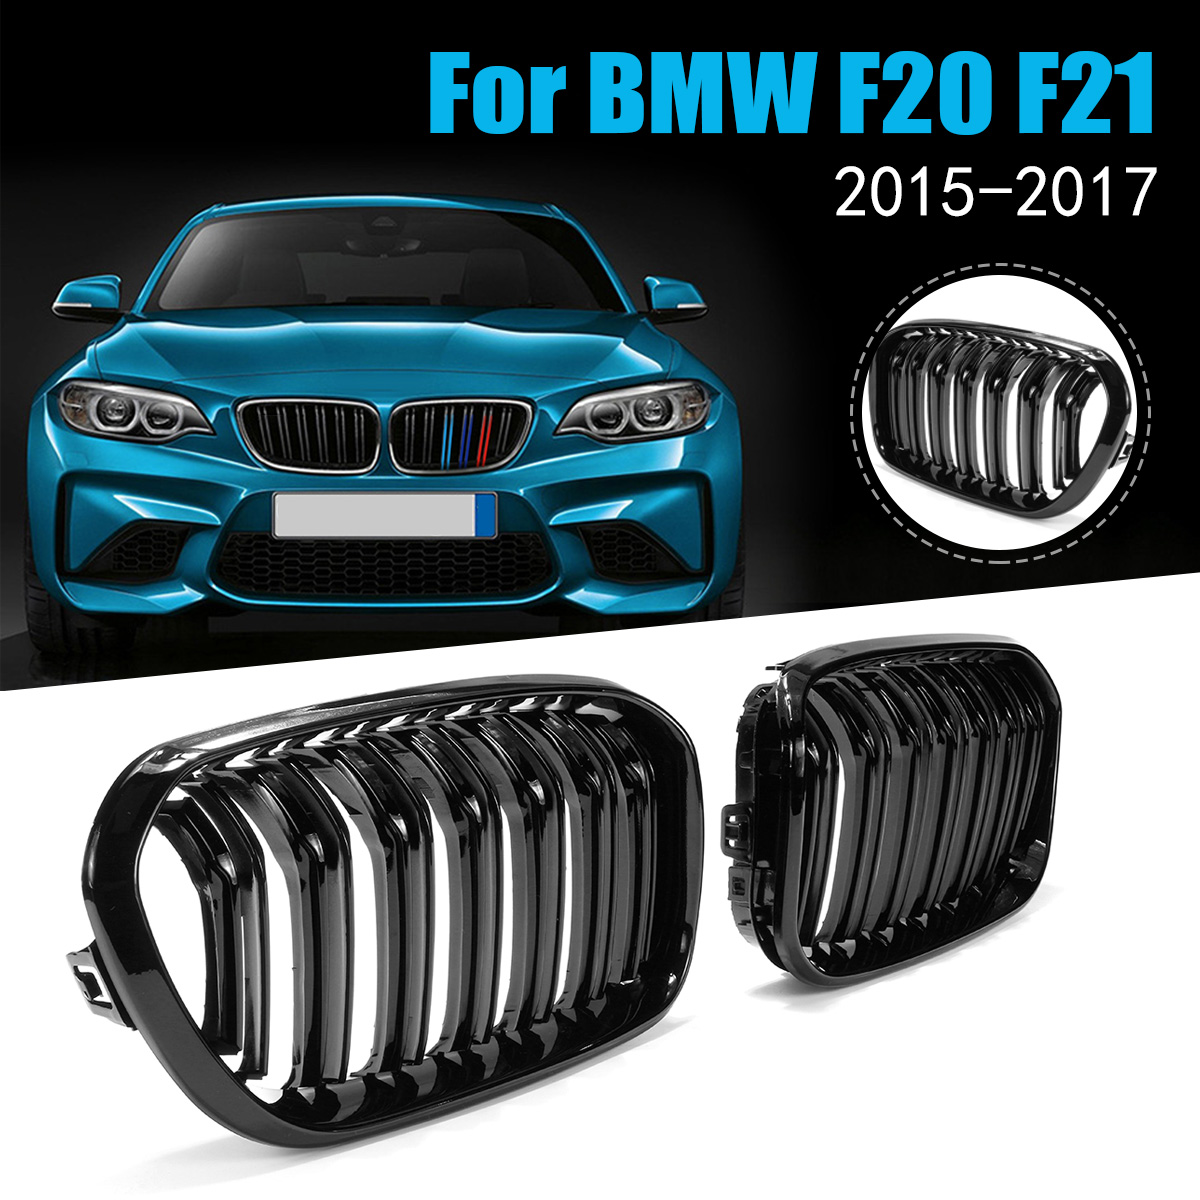 Pair Gloss Matt Black Double Slat Line M Color Front Kidney Grill Grille Car Styling Racing Grill For BMW F20 F21 1 Series 15-16 gloss black front dual line grille grill for bmw f20 f21 1 series 118i 2010 2011 2012 2013 2014